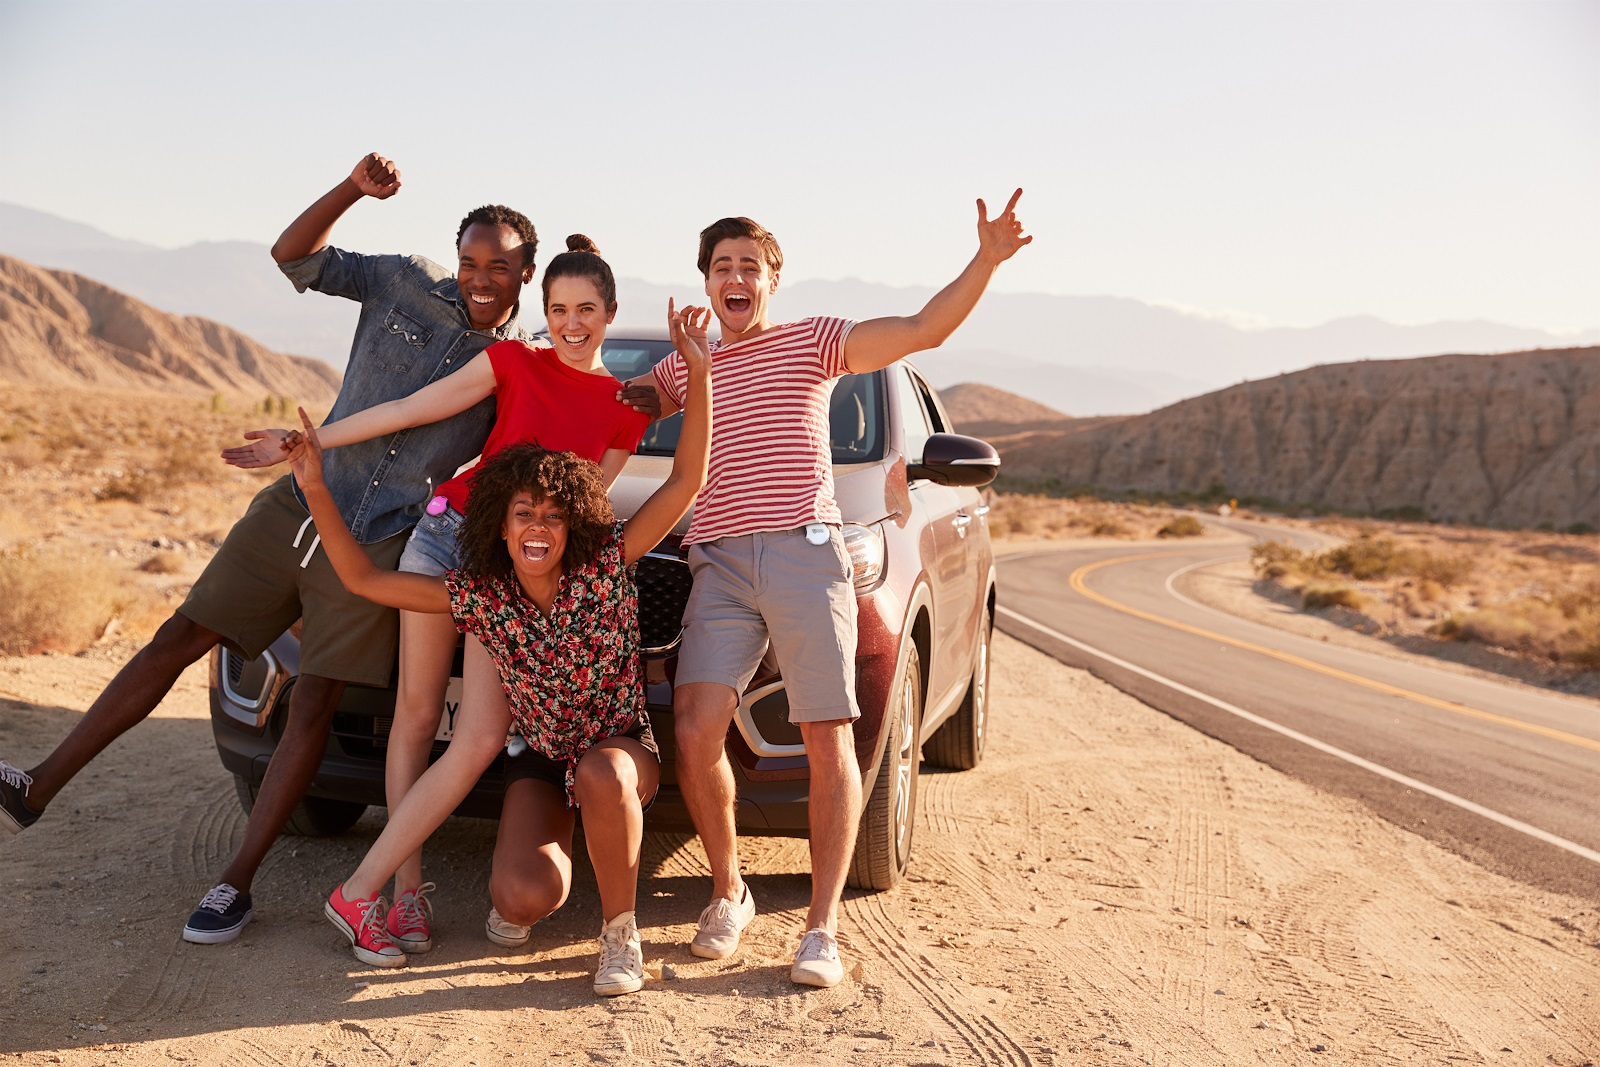 Car Panic Button   11 Road Trip Safety Tips for Your Next Adventure